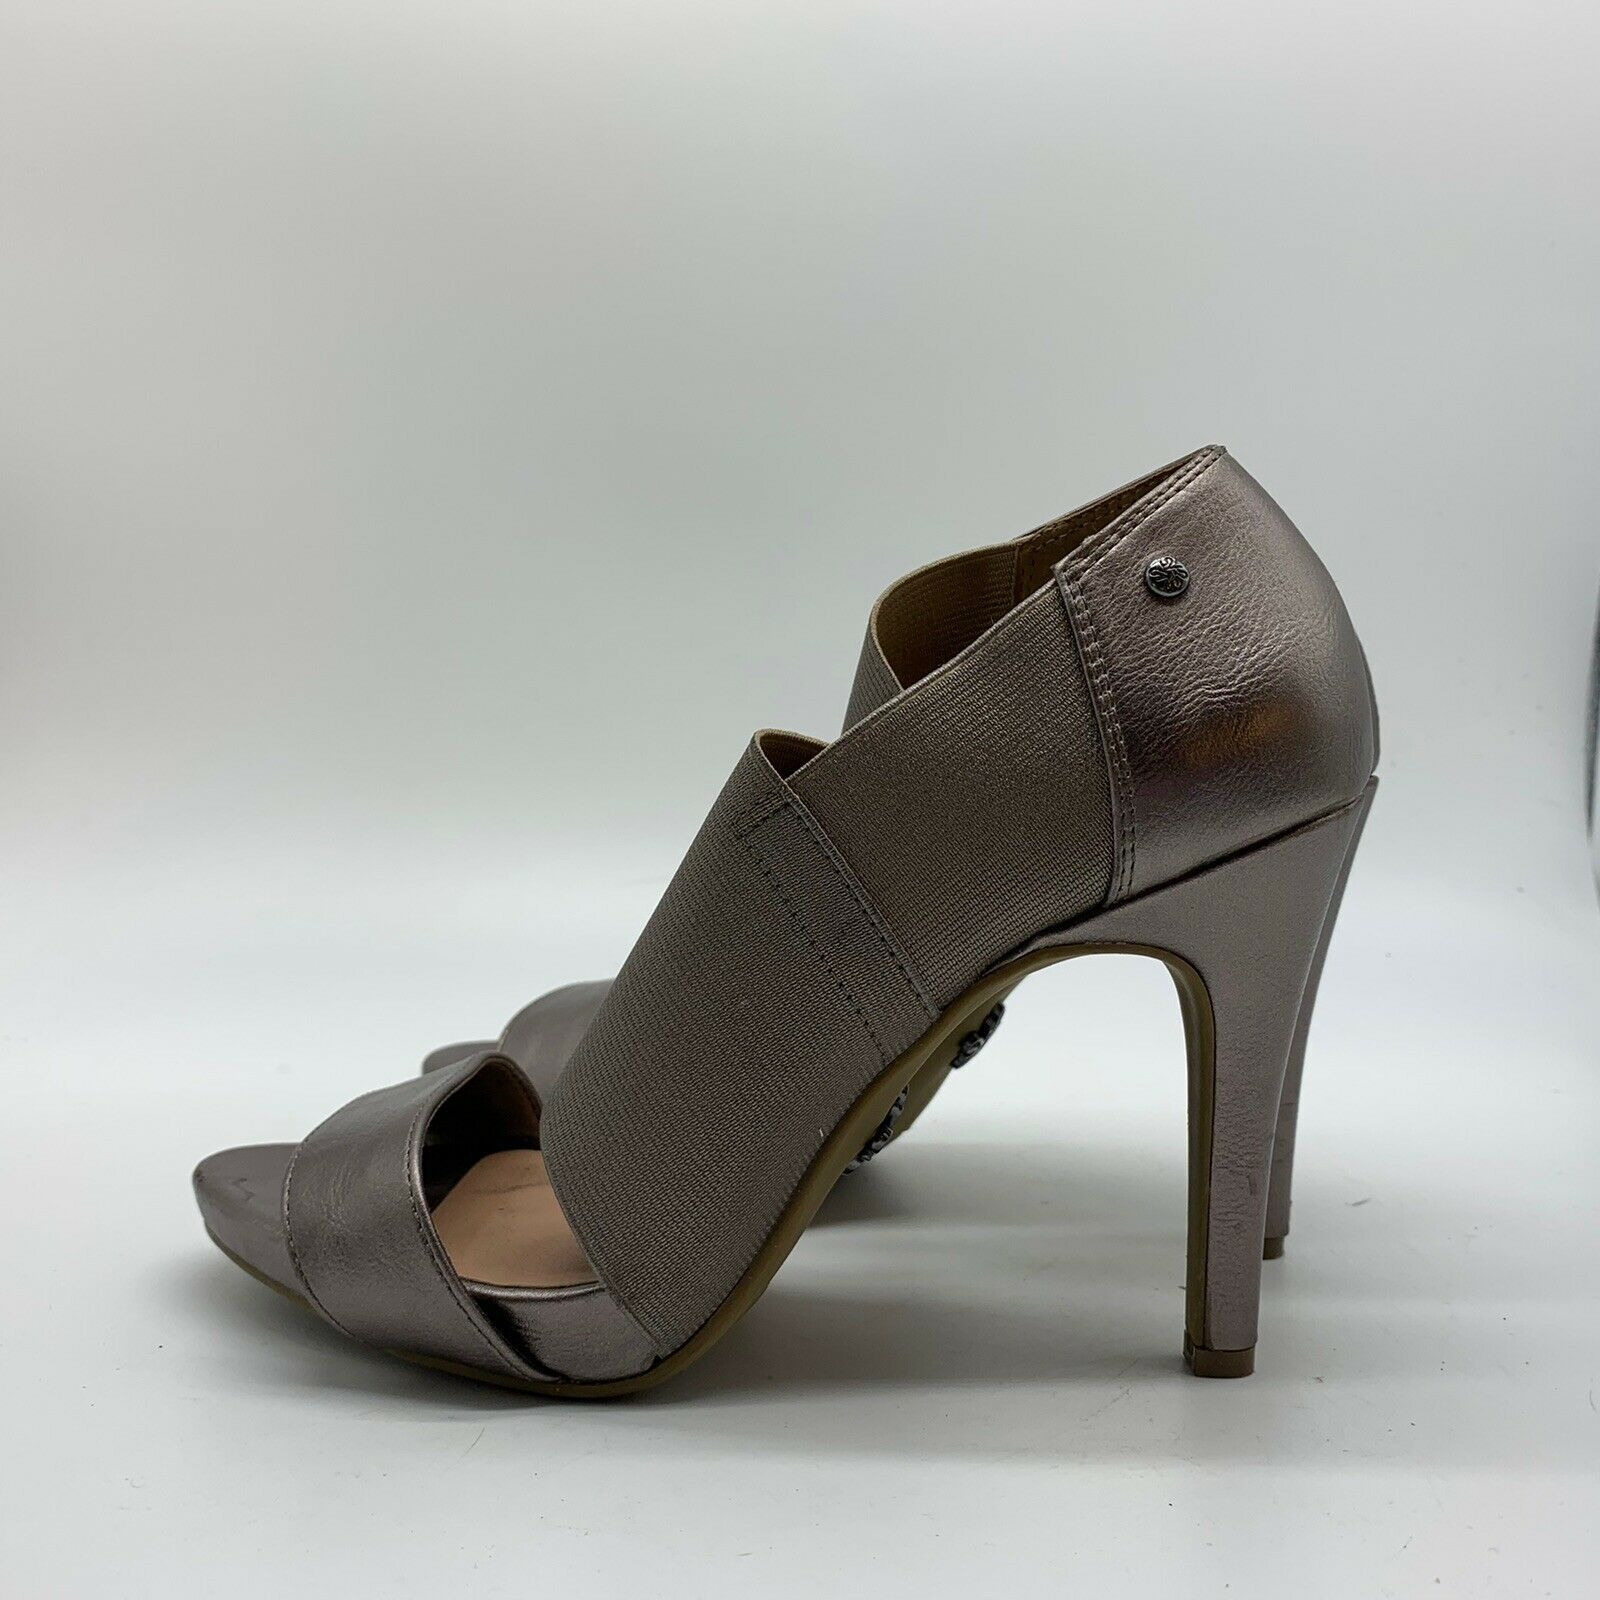 Primary image for Simply Vera Vera Wang Women's Gray High Heels - Size 8M